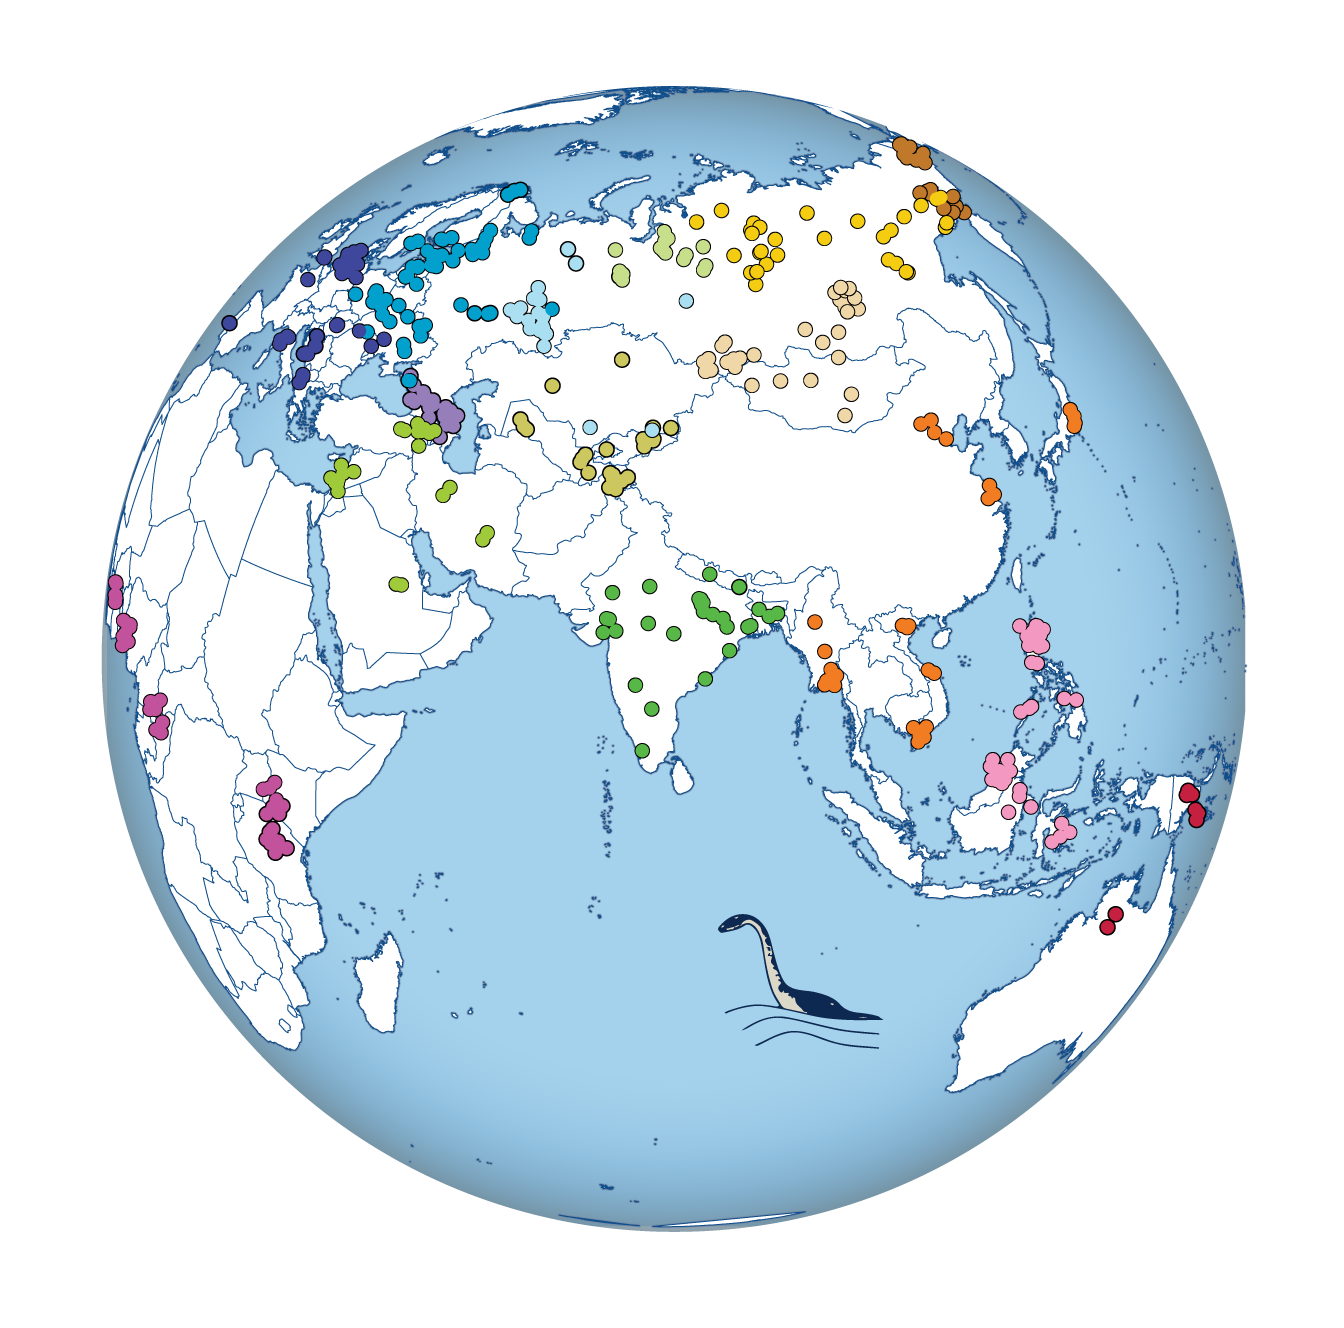 Geographic distribution of sequenced human genomes. Colors indicate geographic origins, and symbols refer to different sample subsets.